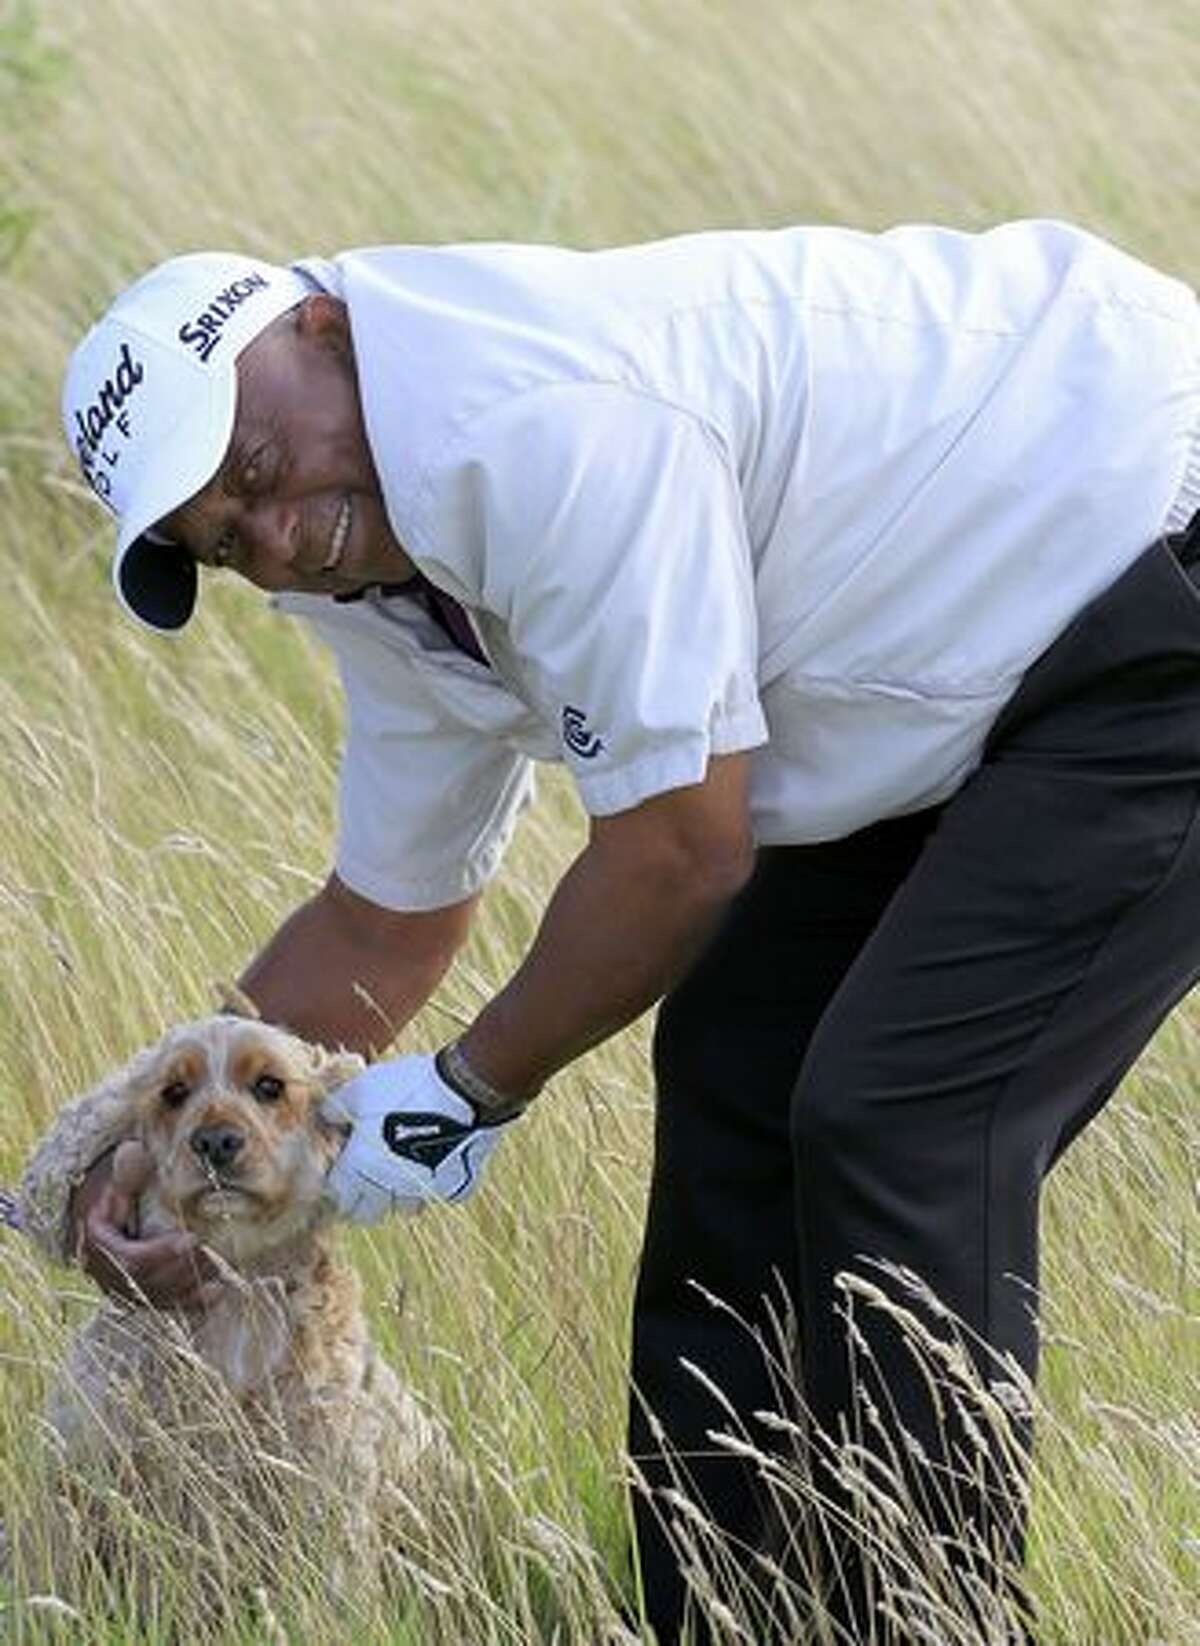 Jerry Bruner, of the U.S., greets a spaniel in the crowd during the final round of the Cleveland Golf Srixon Scottish Senior Open, on the Torrance Course at Fairmont St Andrews on August 22, 2010 in St Andrews, Scotland.